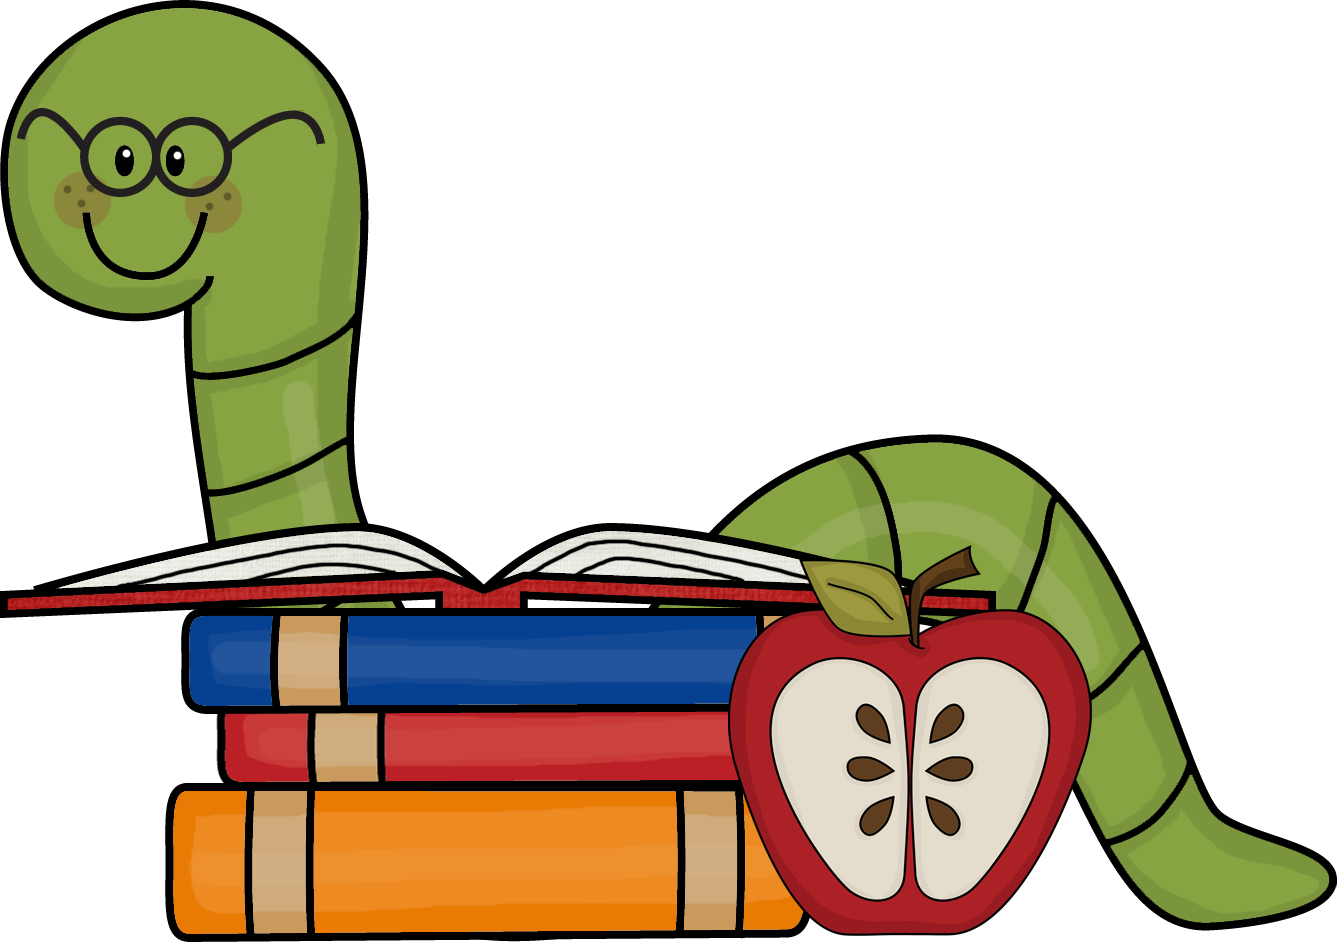 Free bookworm cliparts download. Wildcat clipart wilbur